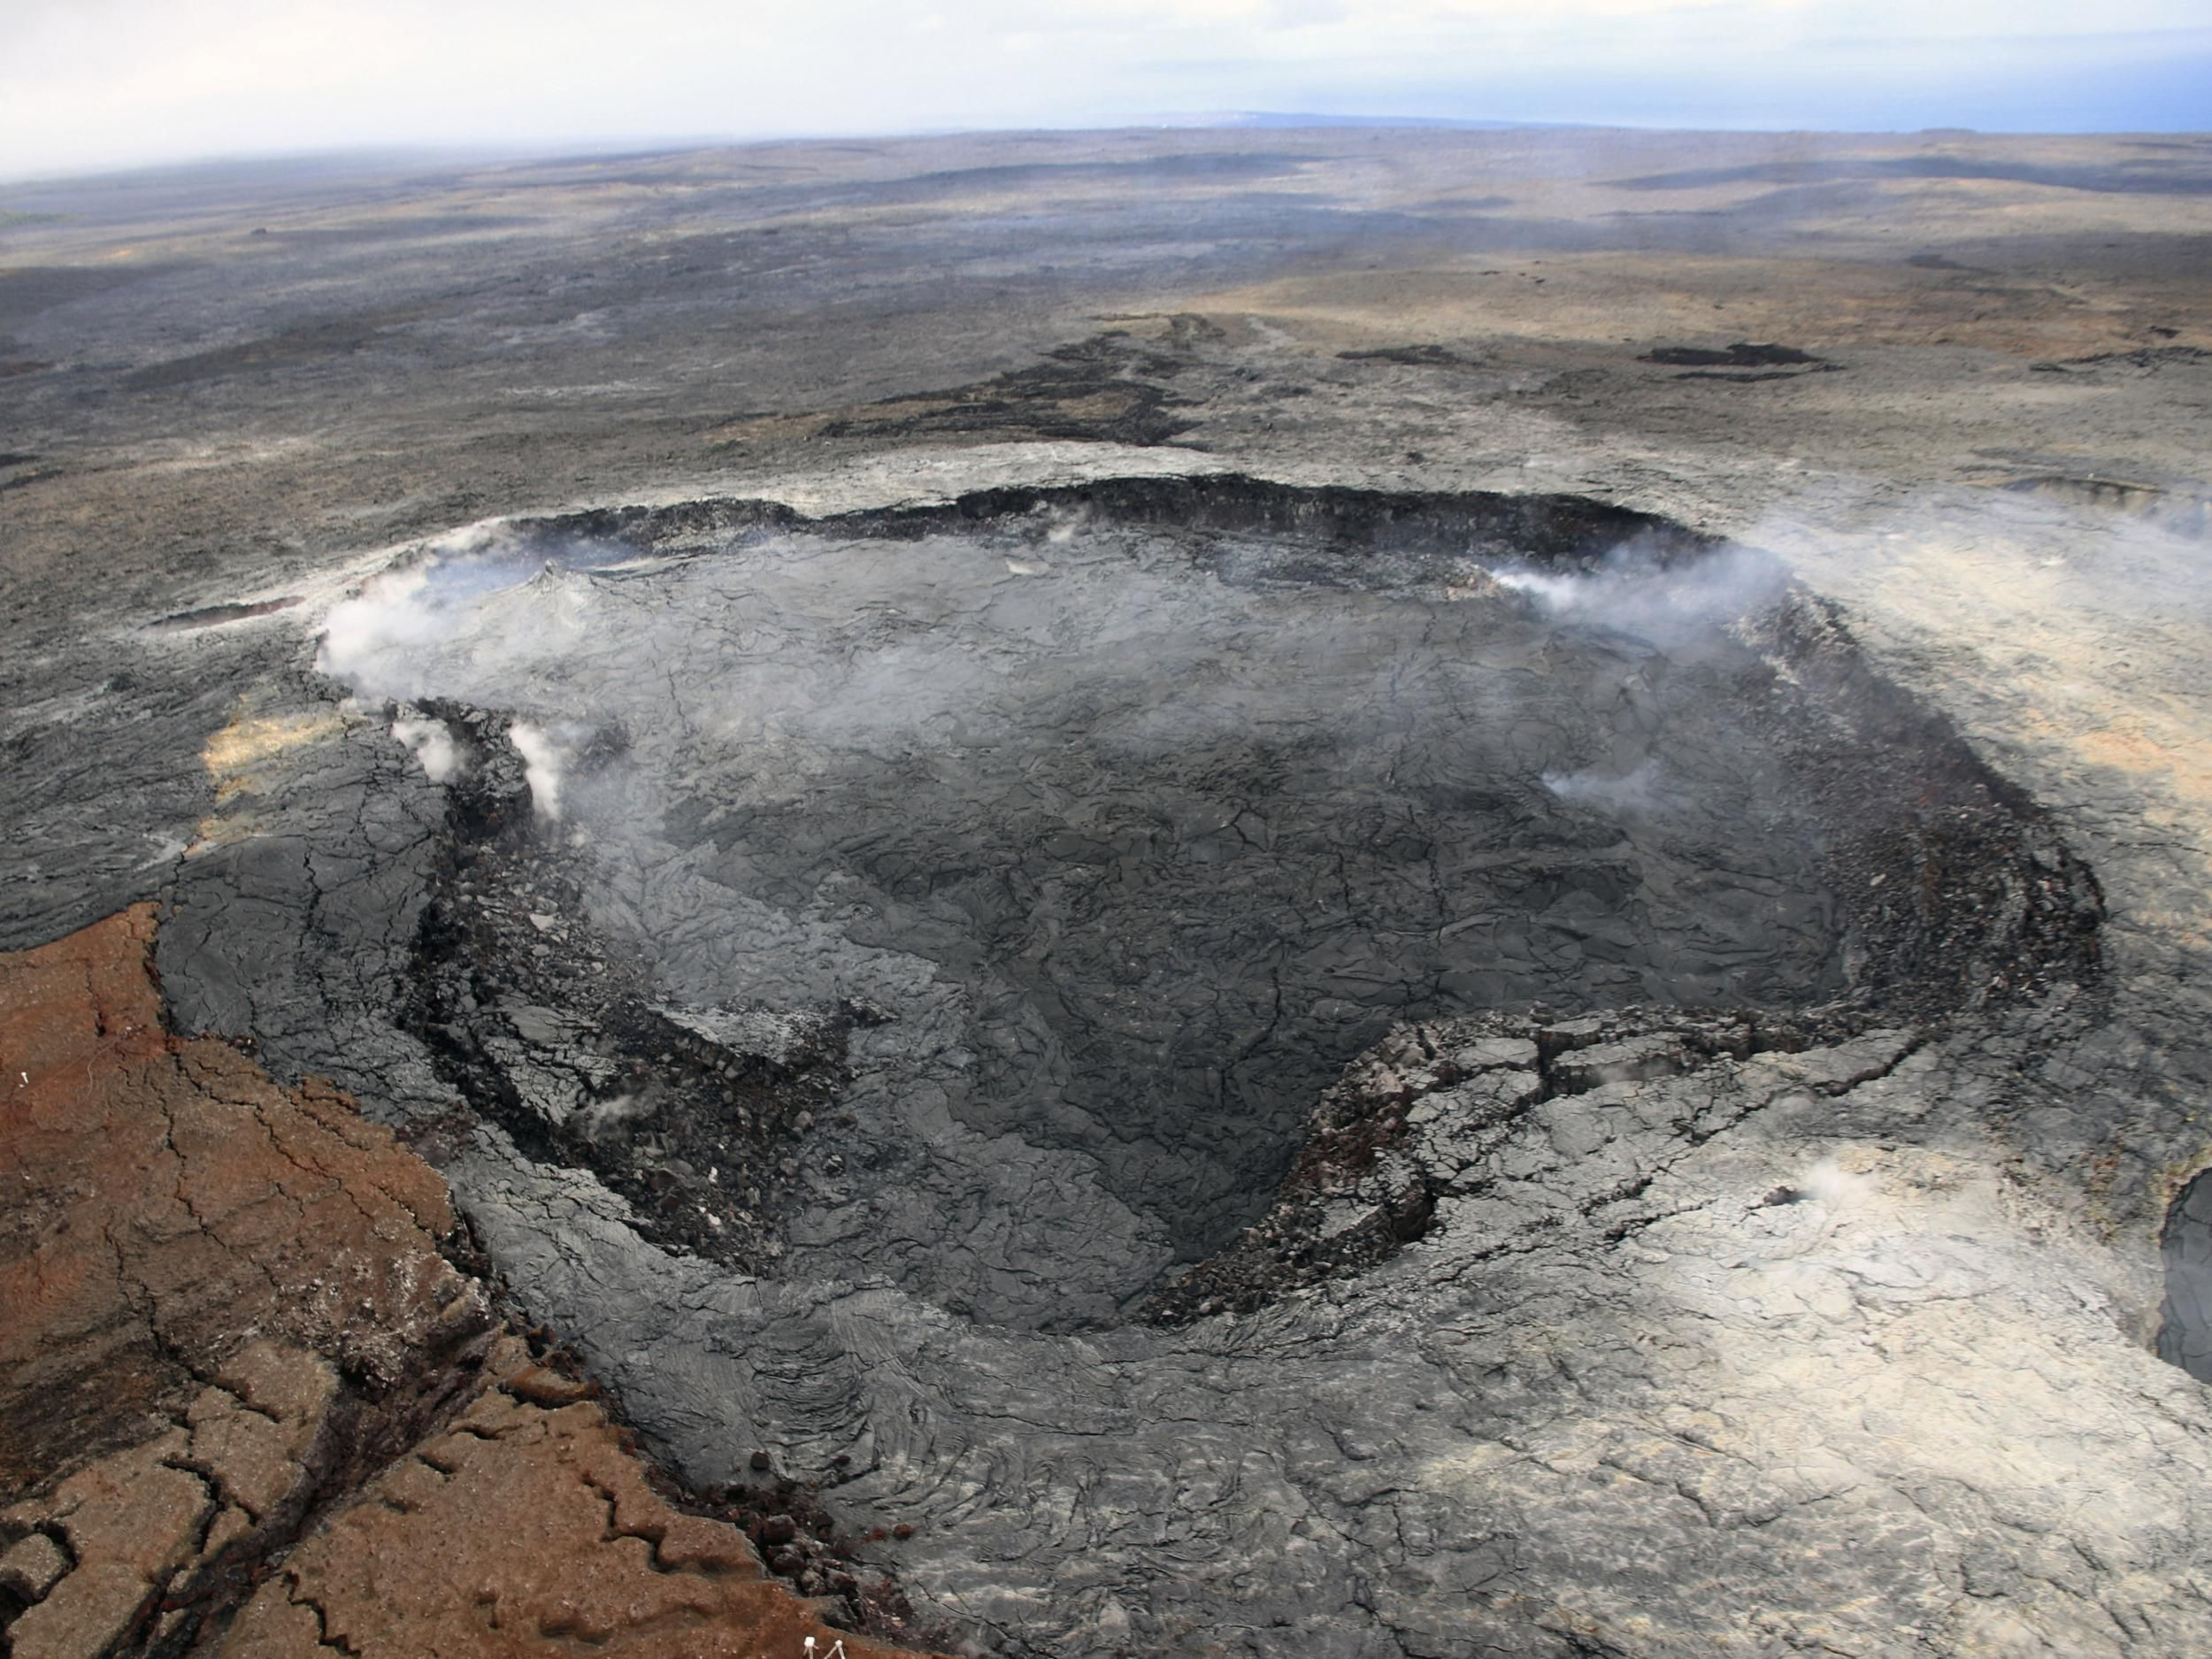 Hawaii Volcano Could Erupt After 250 Earthquakes In 24 Hours